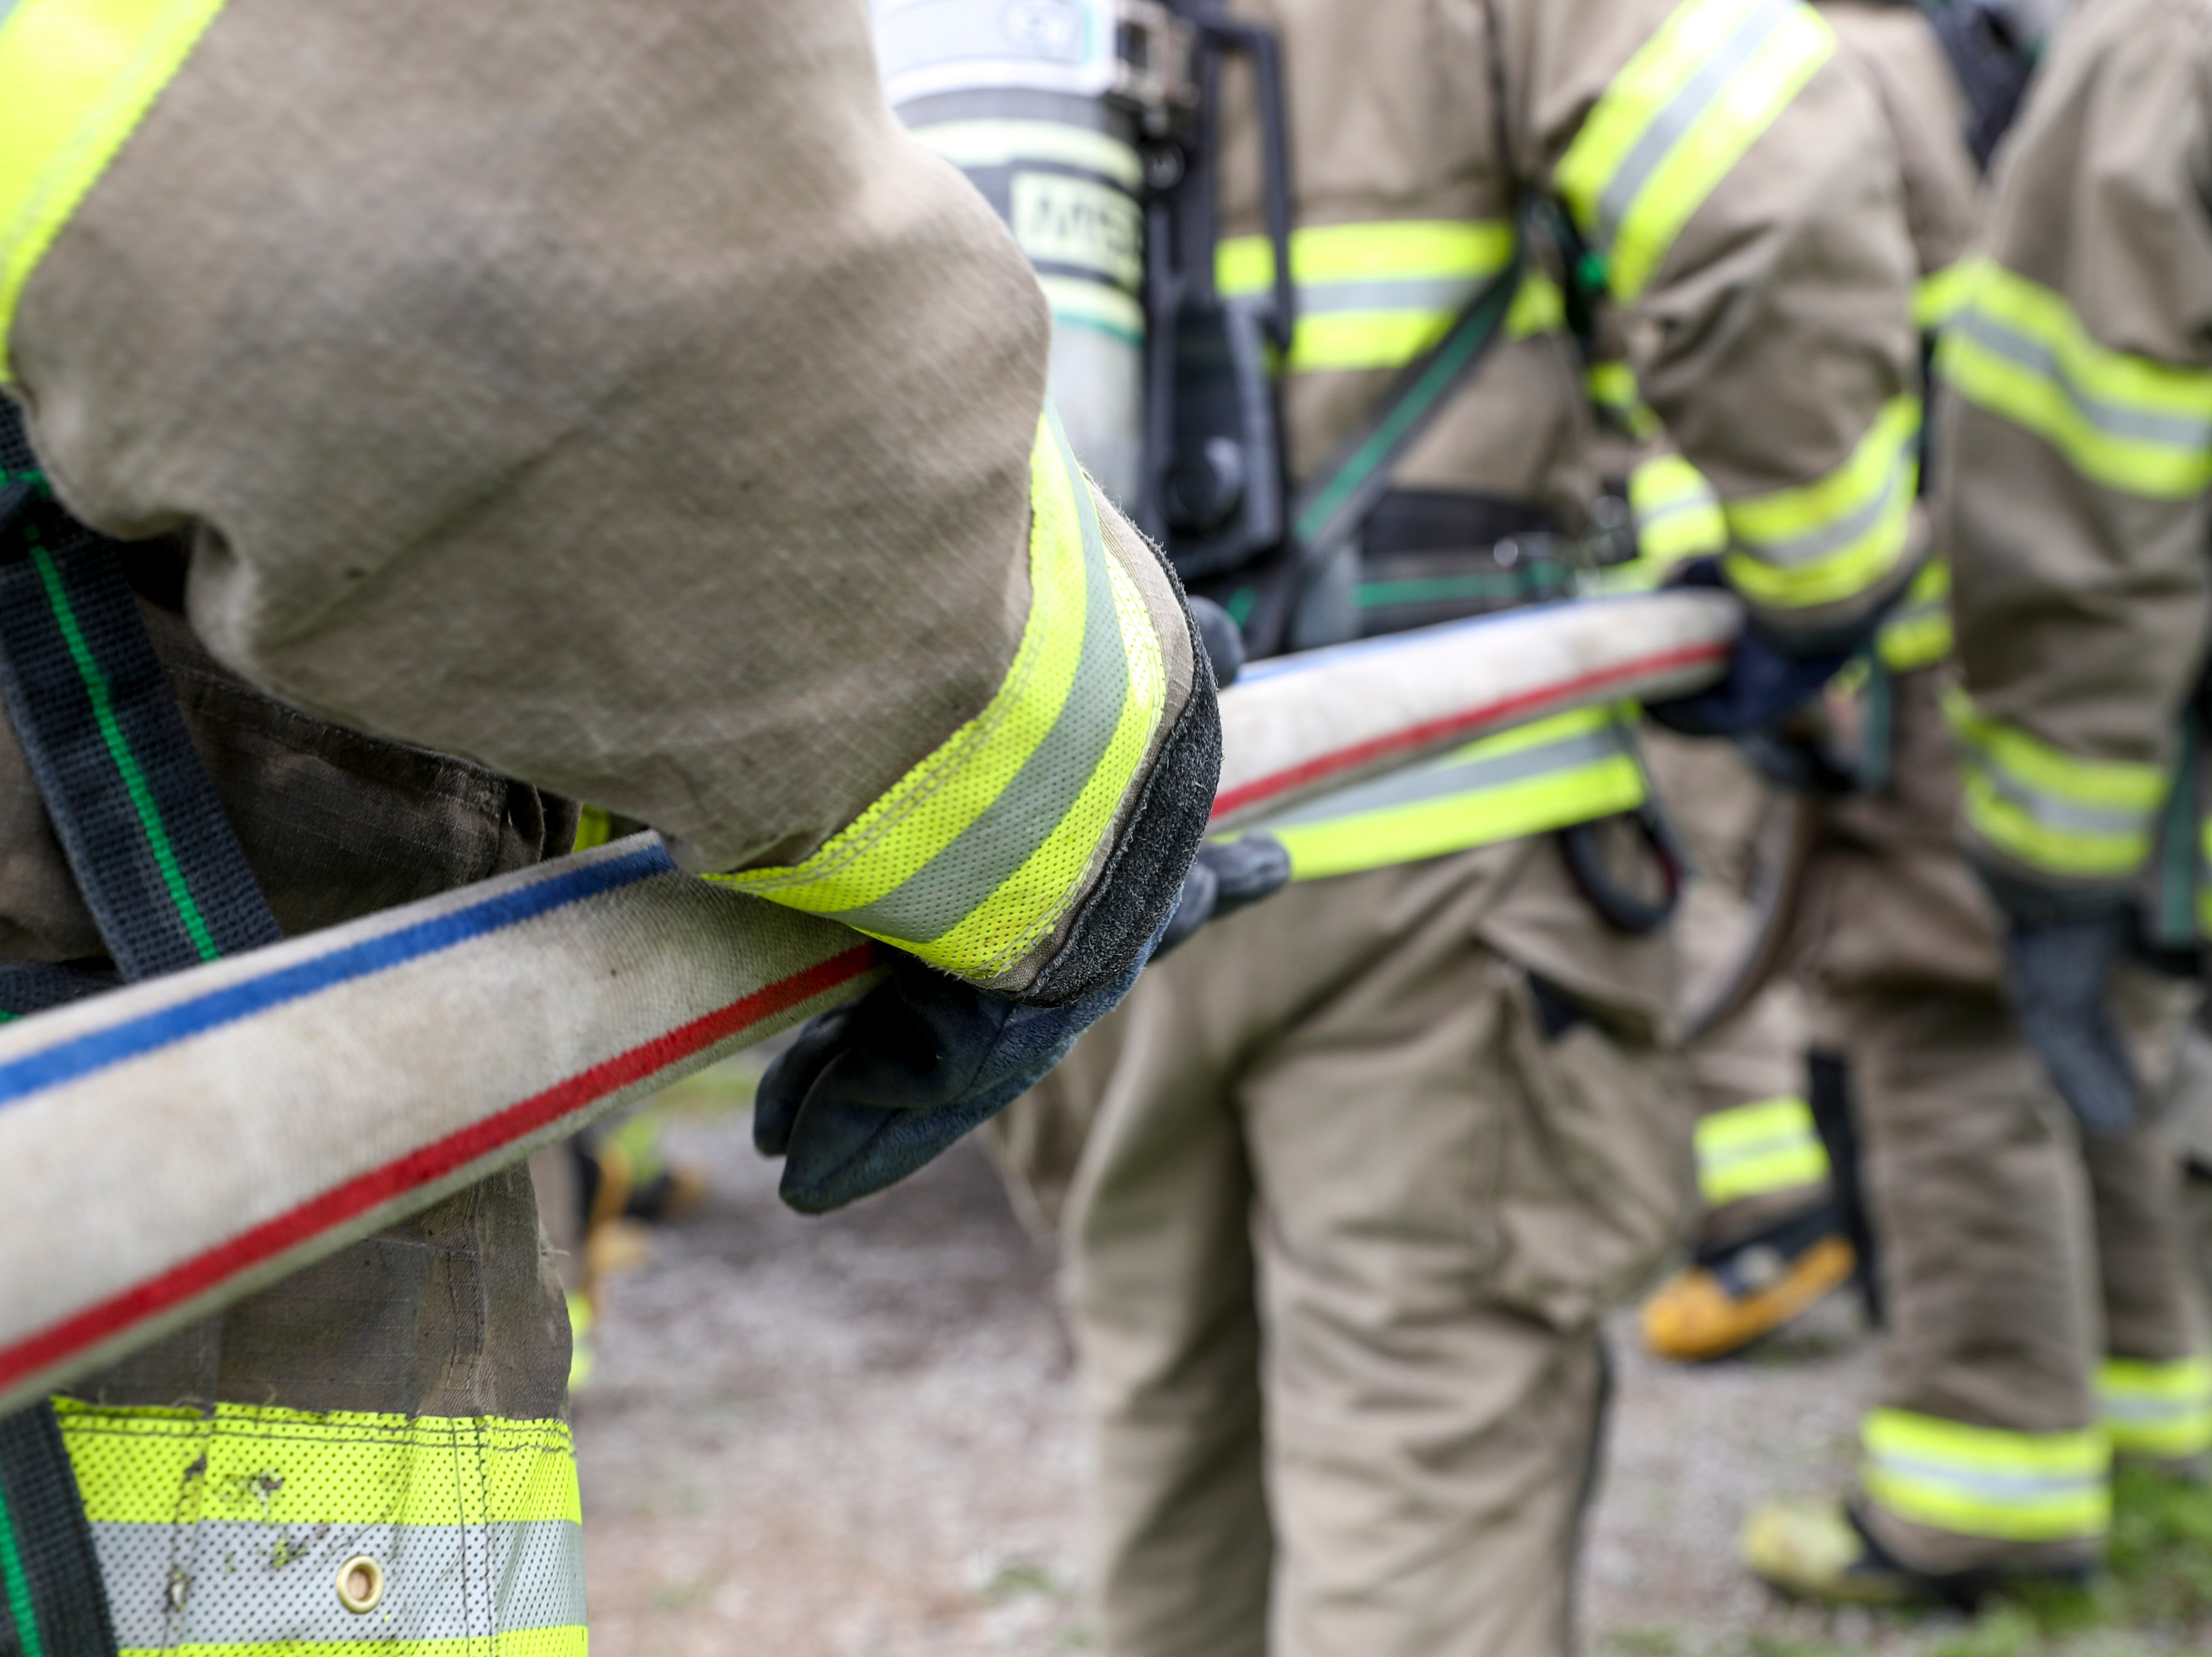 New recruits help control and guide a hose into the burn building at Clarksville Fire Rescue in Clarksville, Tenn., on Friday, May 10, 2019.